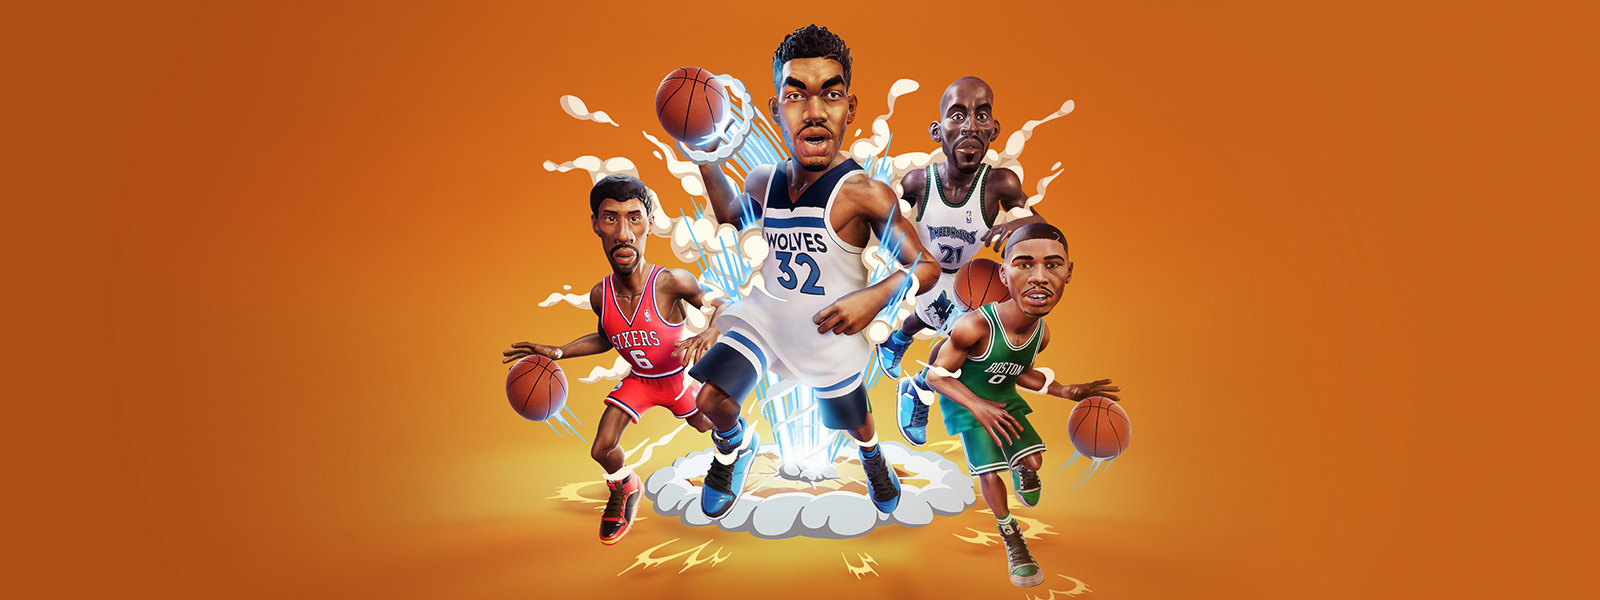 Front view of 4 Caricaturized basketball players